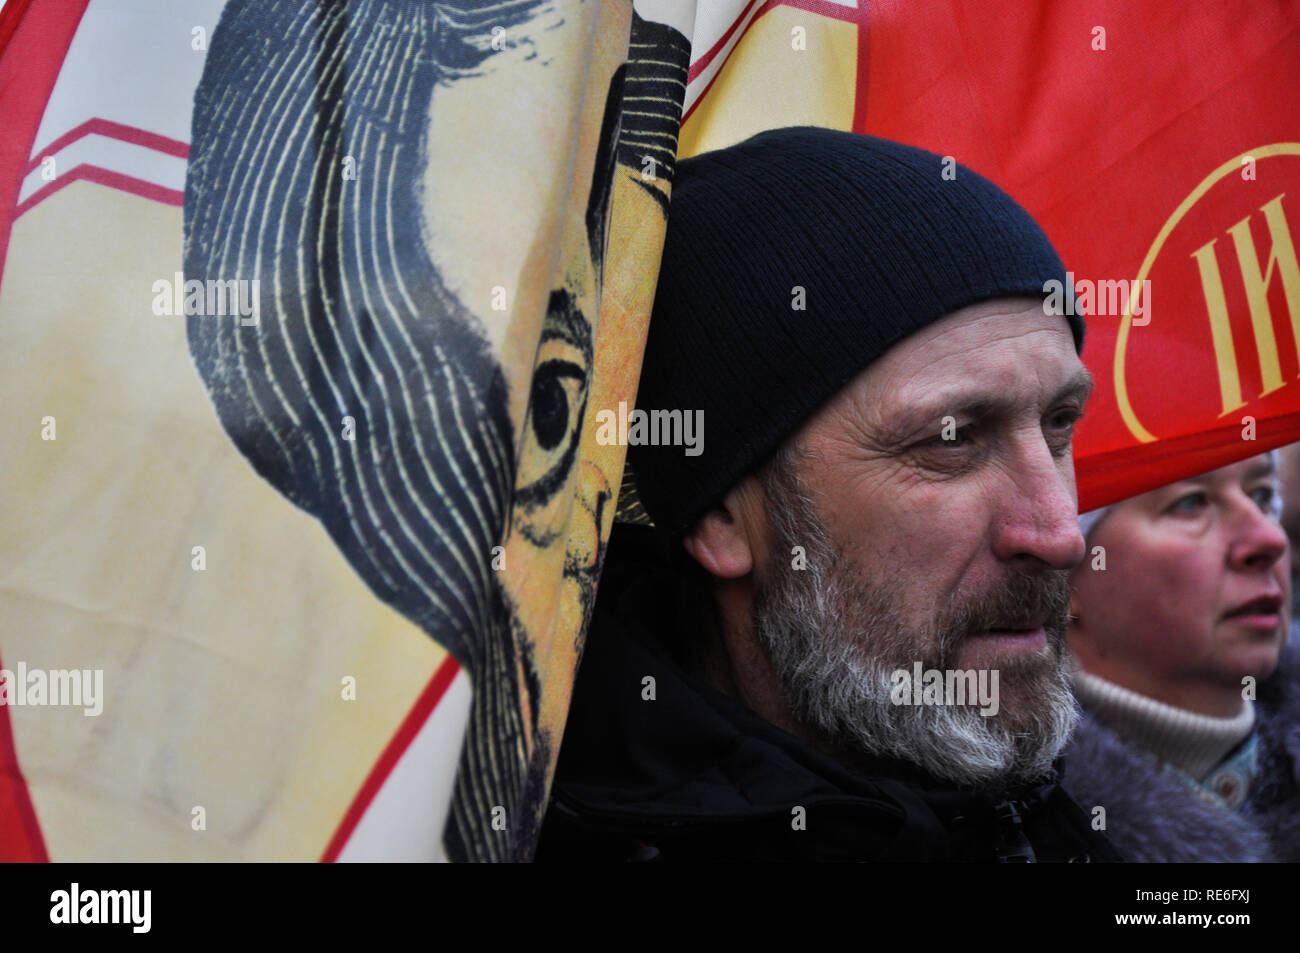 Moscow, Russia. 20th Jan, 2019. A man with a Jesus banner at a rally. Hundreds from both left and right protest possible handover of contested Kuril islands (Northern territories) to Japan at a rally in central Moscow. Credit: Aleks Lokhmutov/Alamy Live News. - Stock Image